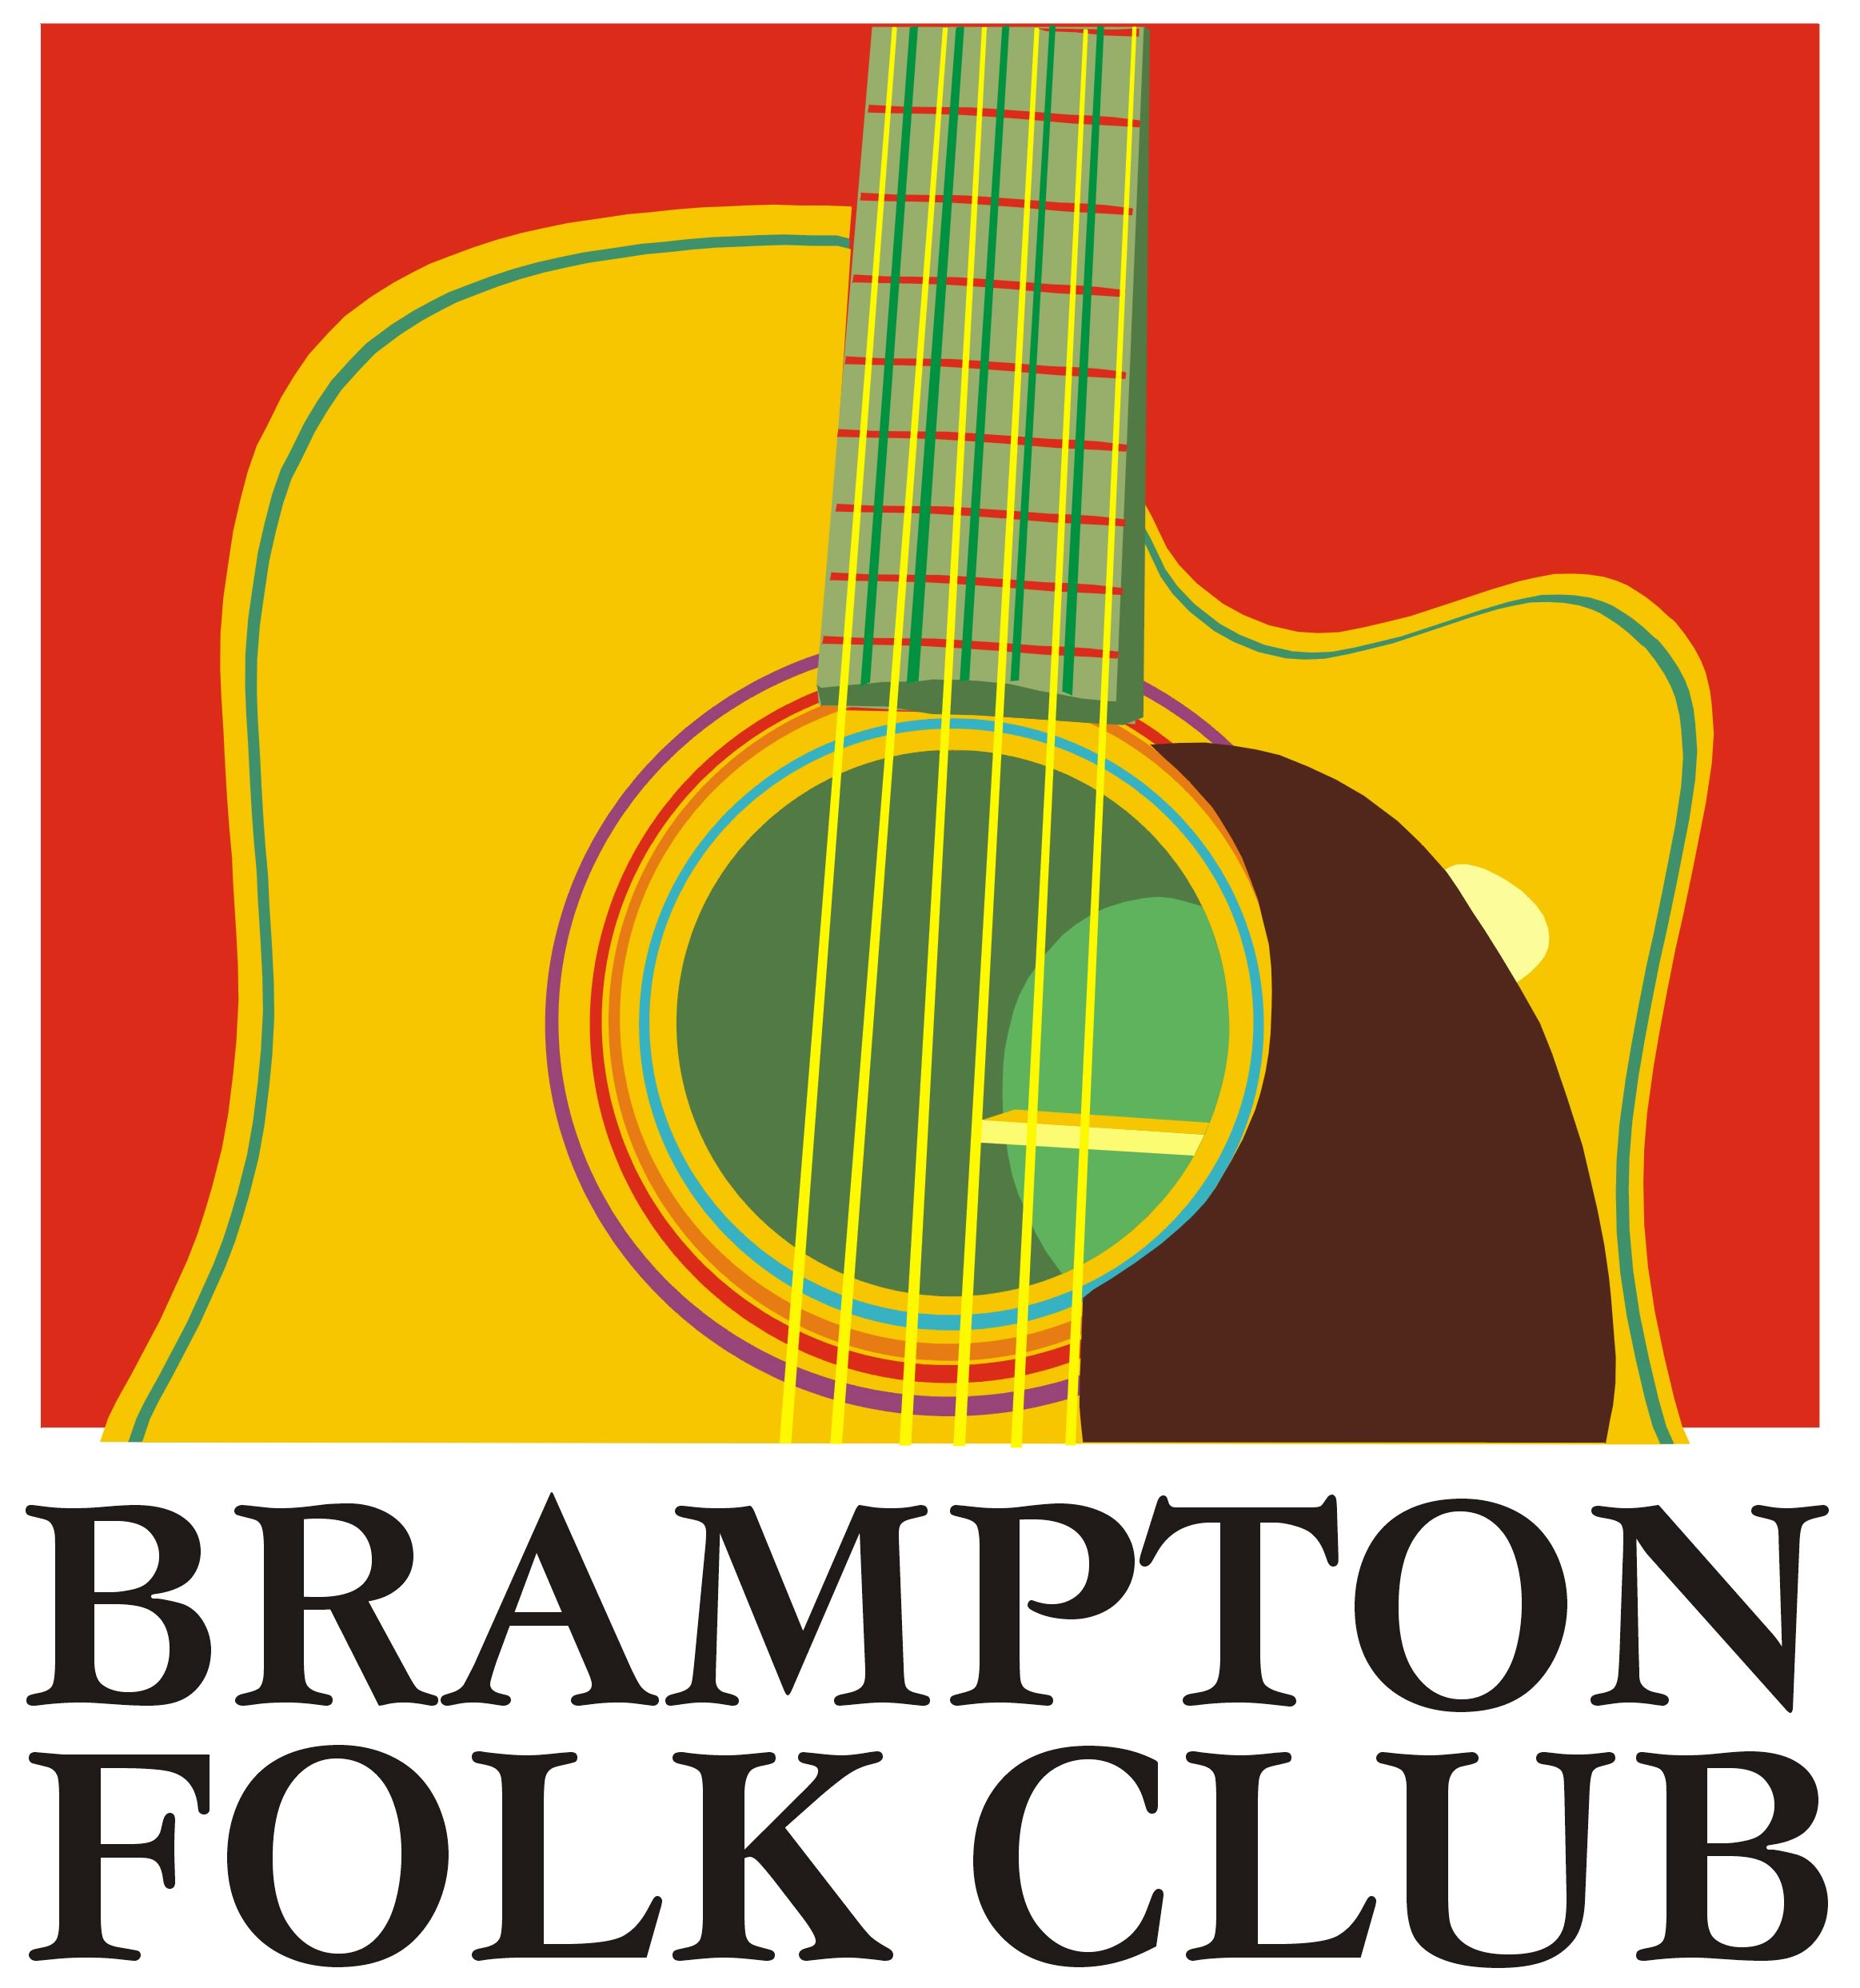 Brampton Folk Club logo